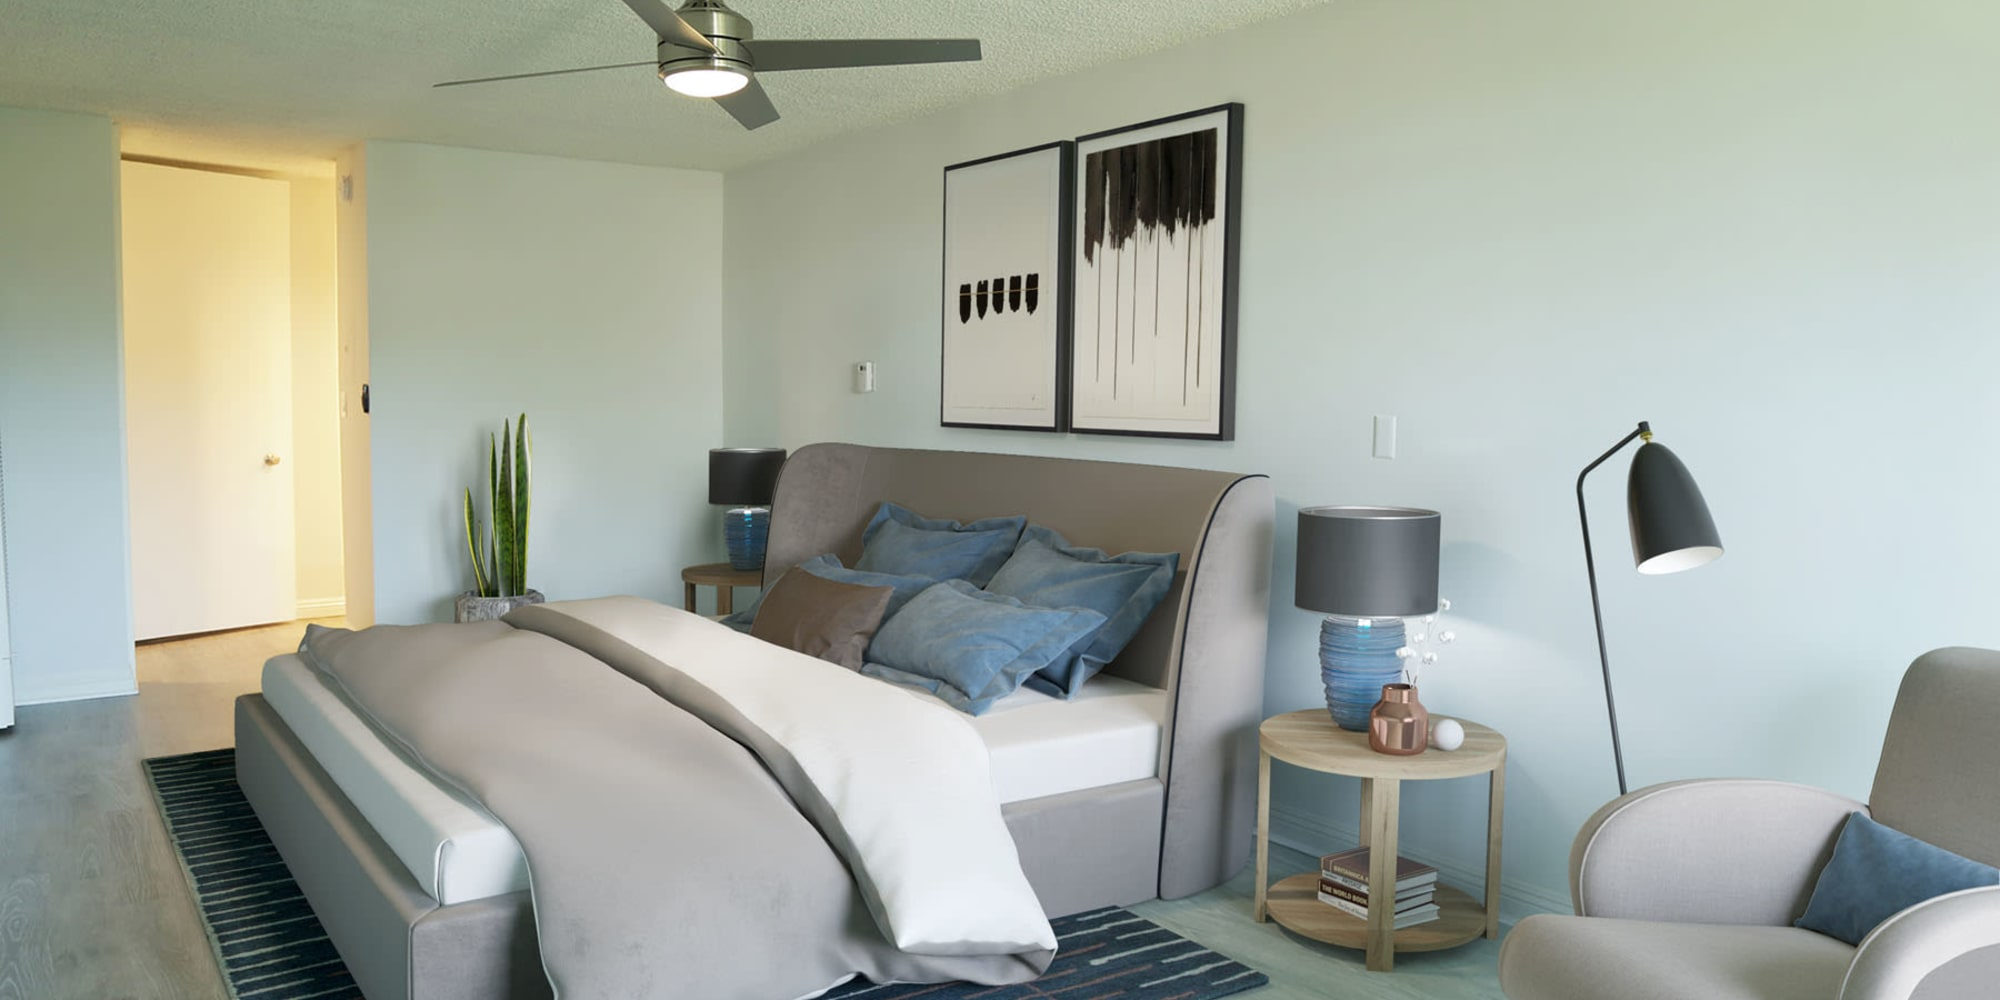 Well-furnished model home's primary bedroom with a ceiling fan at Casa Granada in Los Angeles, California